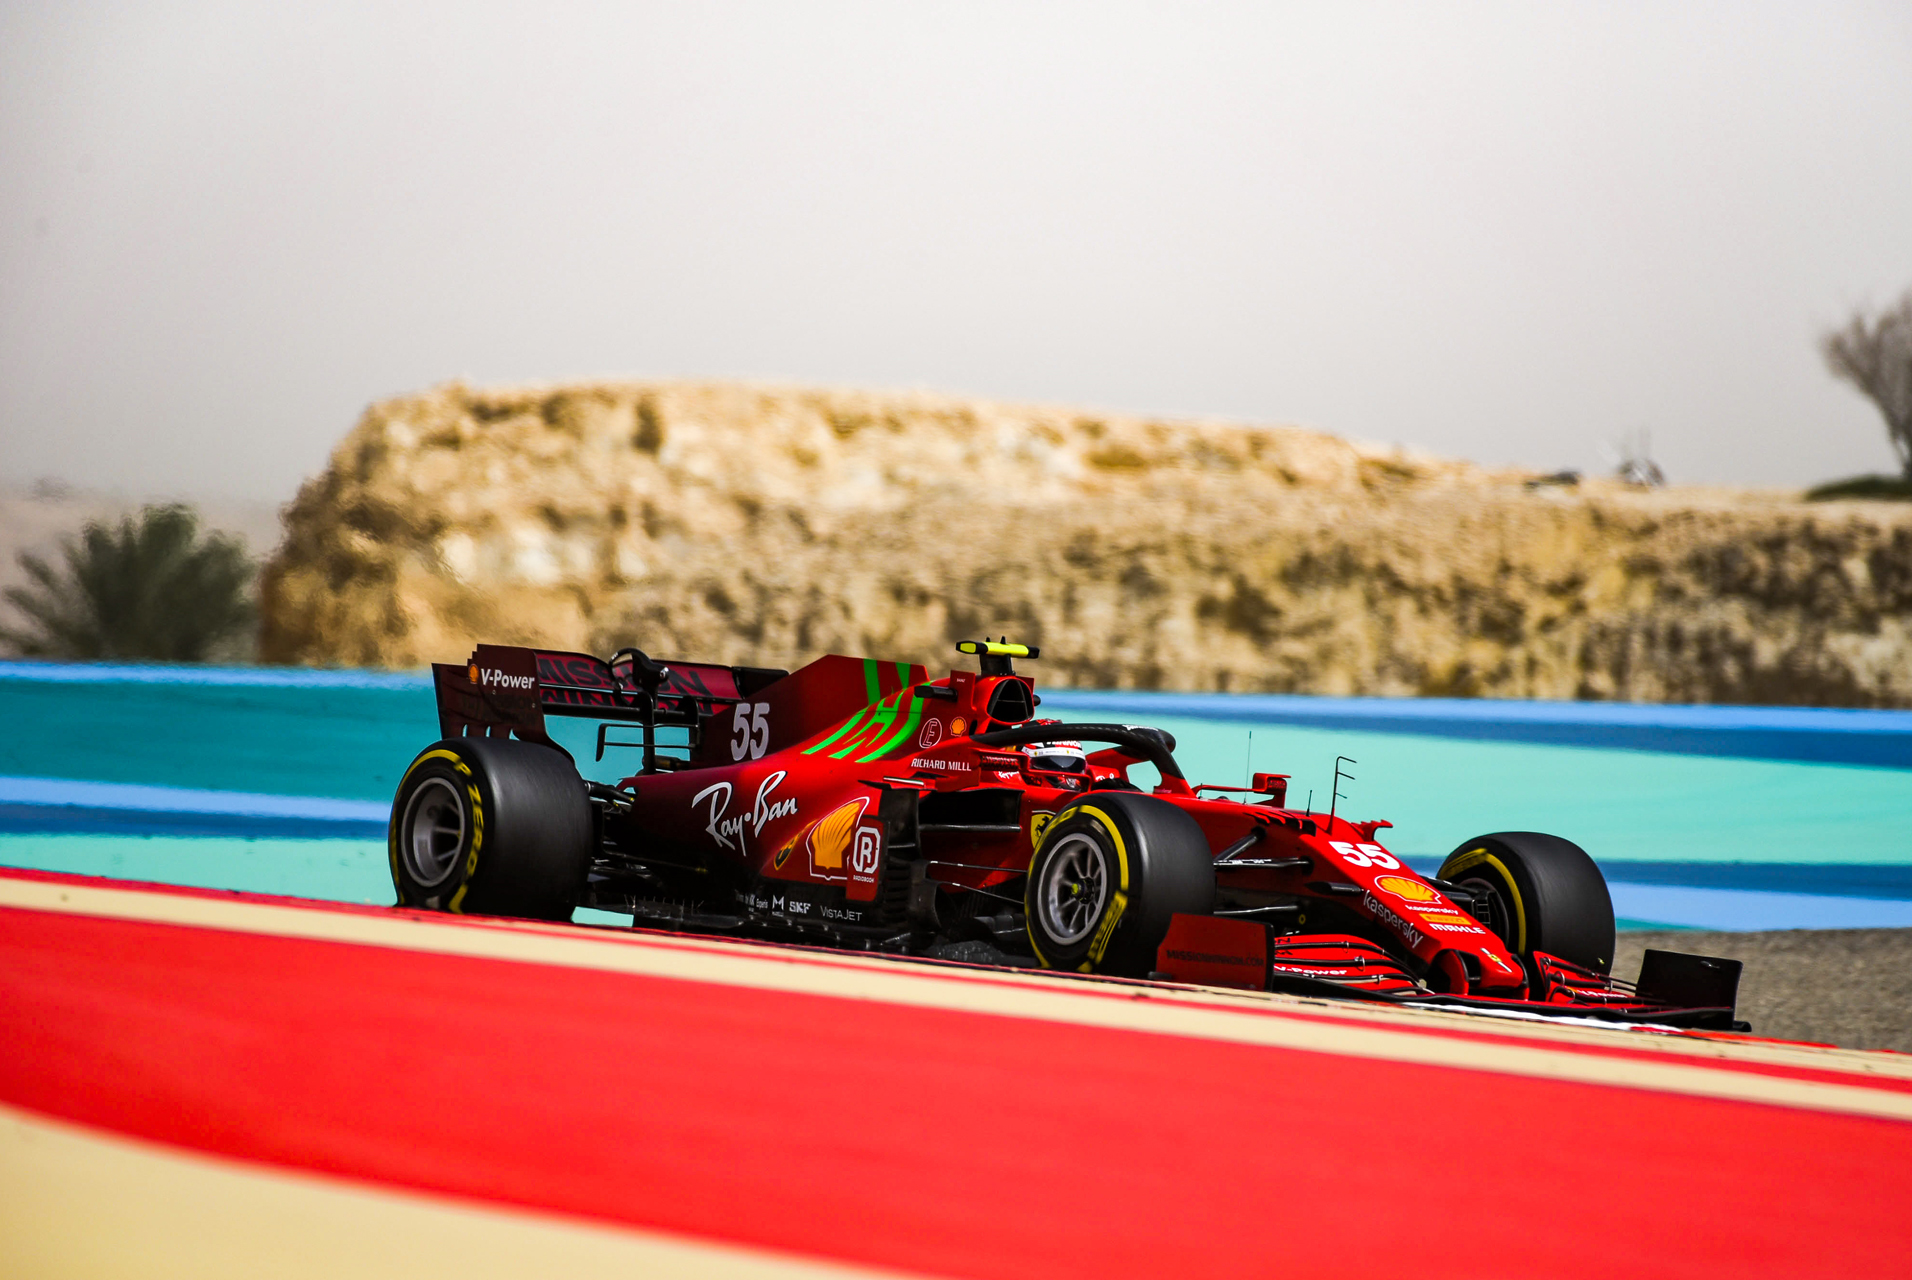 55or-f1-test-bahrain-sf21-day-2_1912